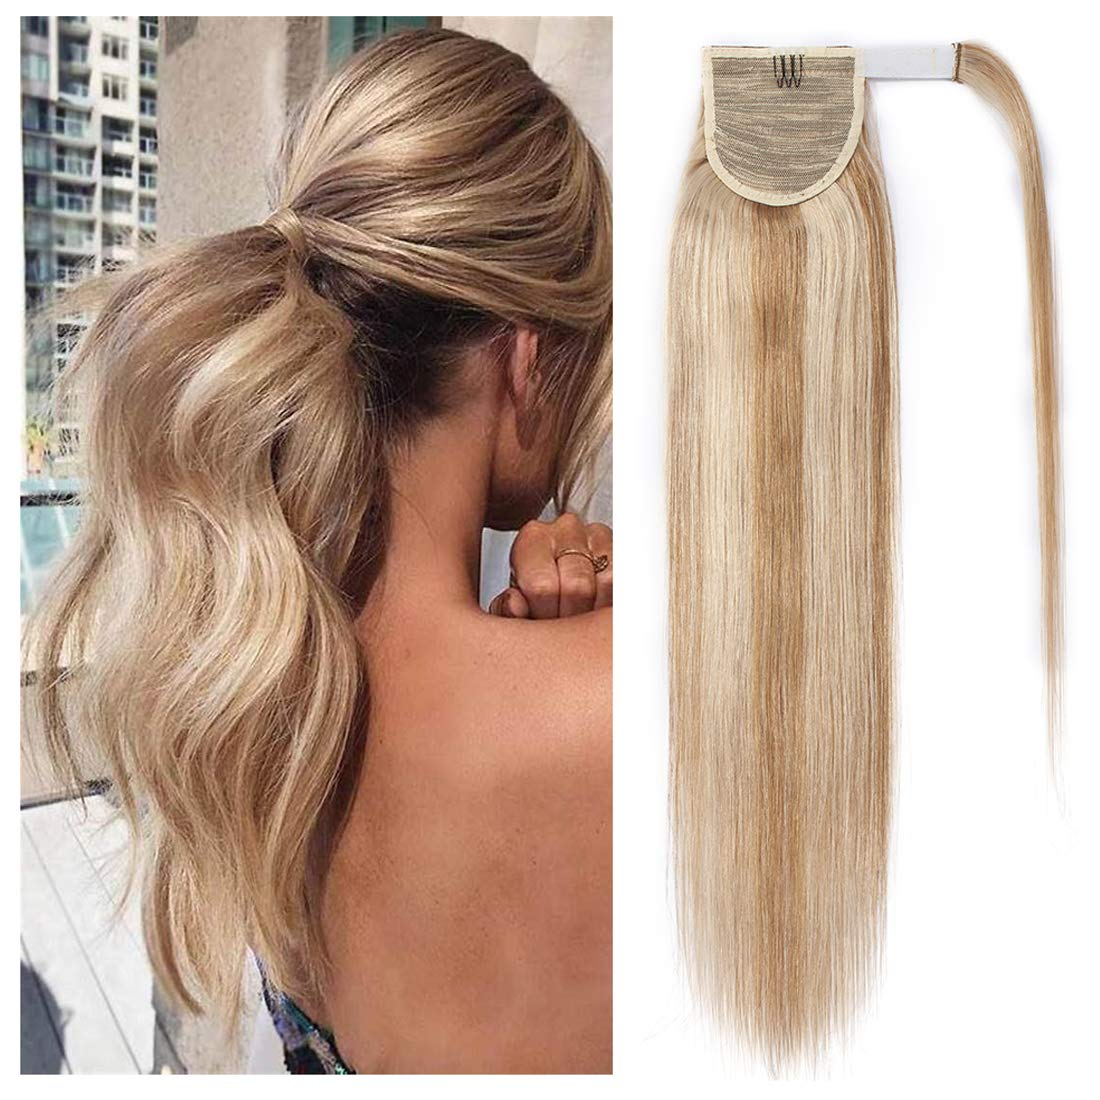 S-noilite Clip in Ponytail Extension Gifts Free shipping New Ar Balayage Hair Wrap Human